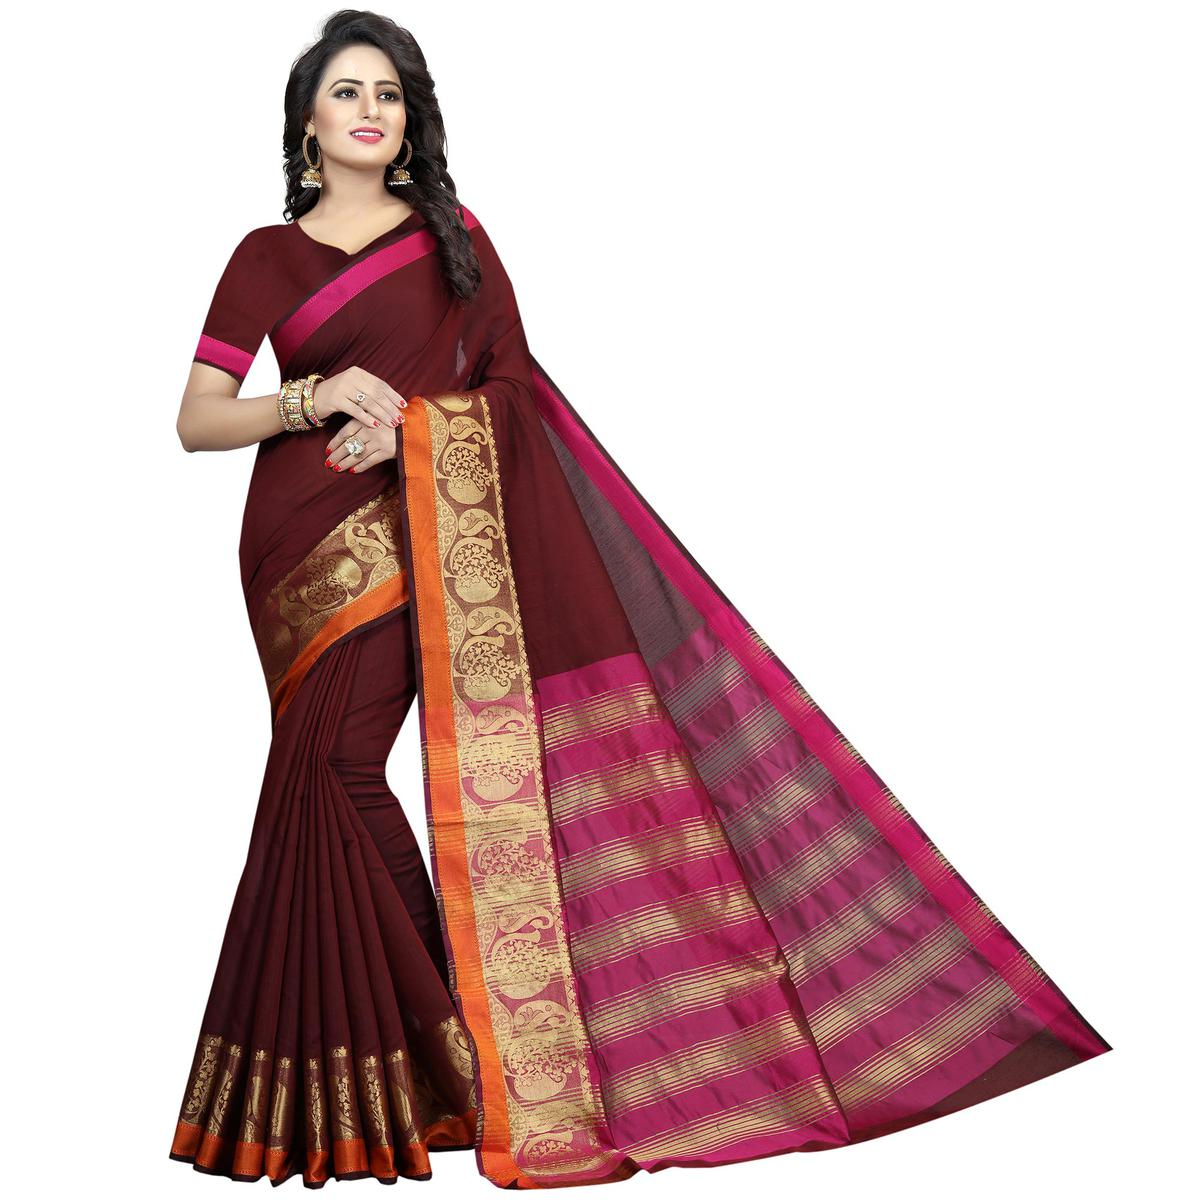 Alluring Maroon Colored Festive Wear Woven Cotton Silk Saree